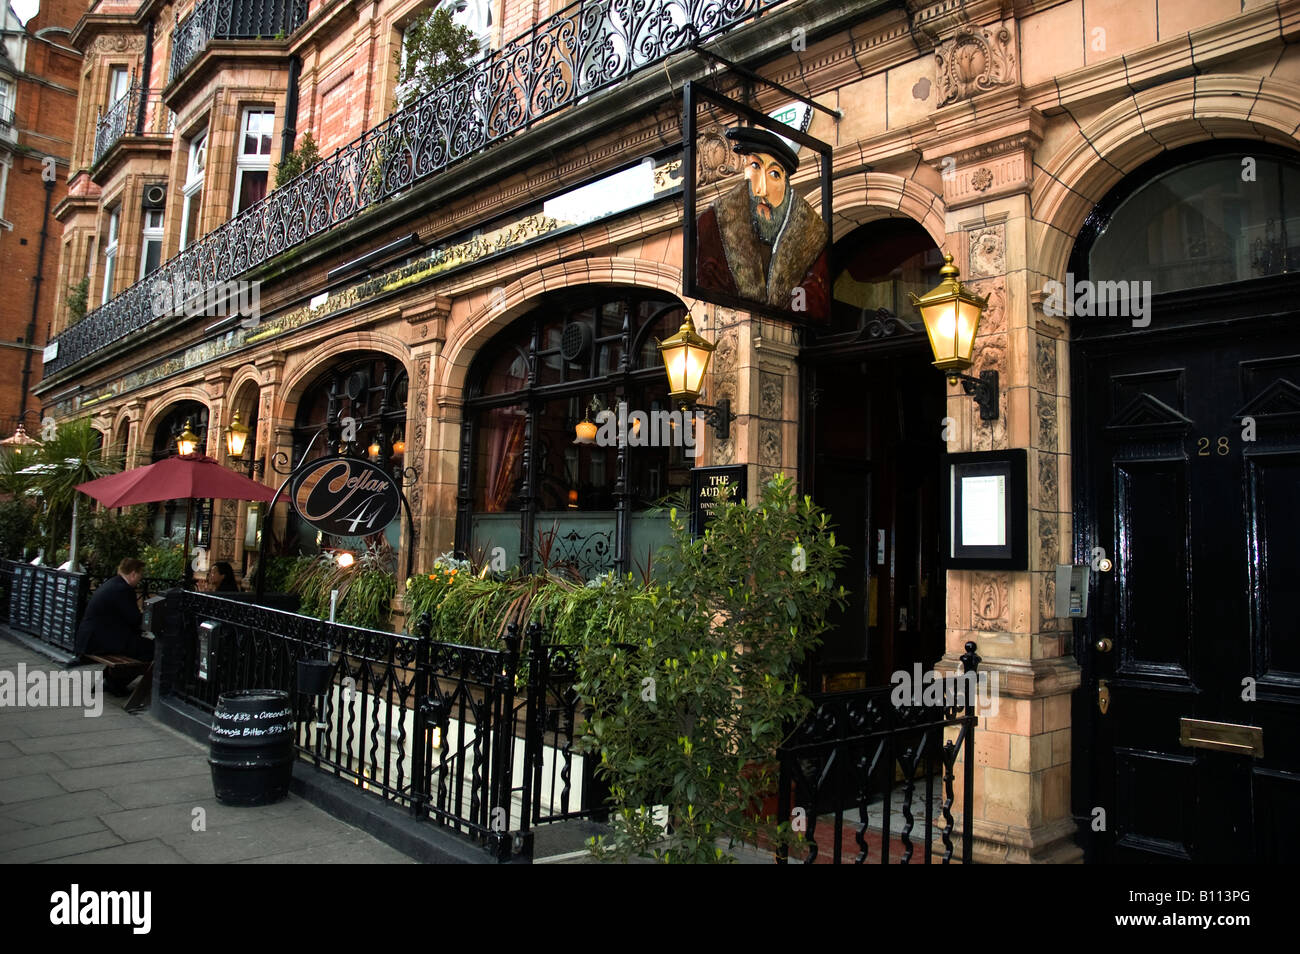 The audley pub restaurant mayfair london uk stock photo for The mayfair